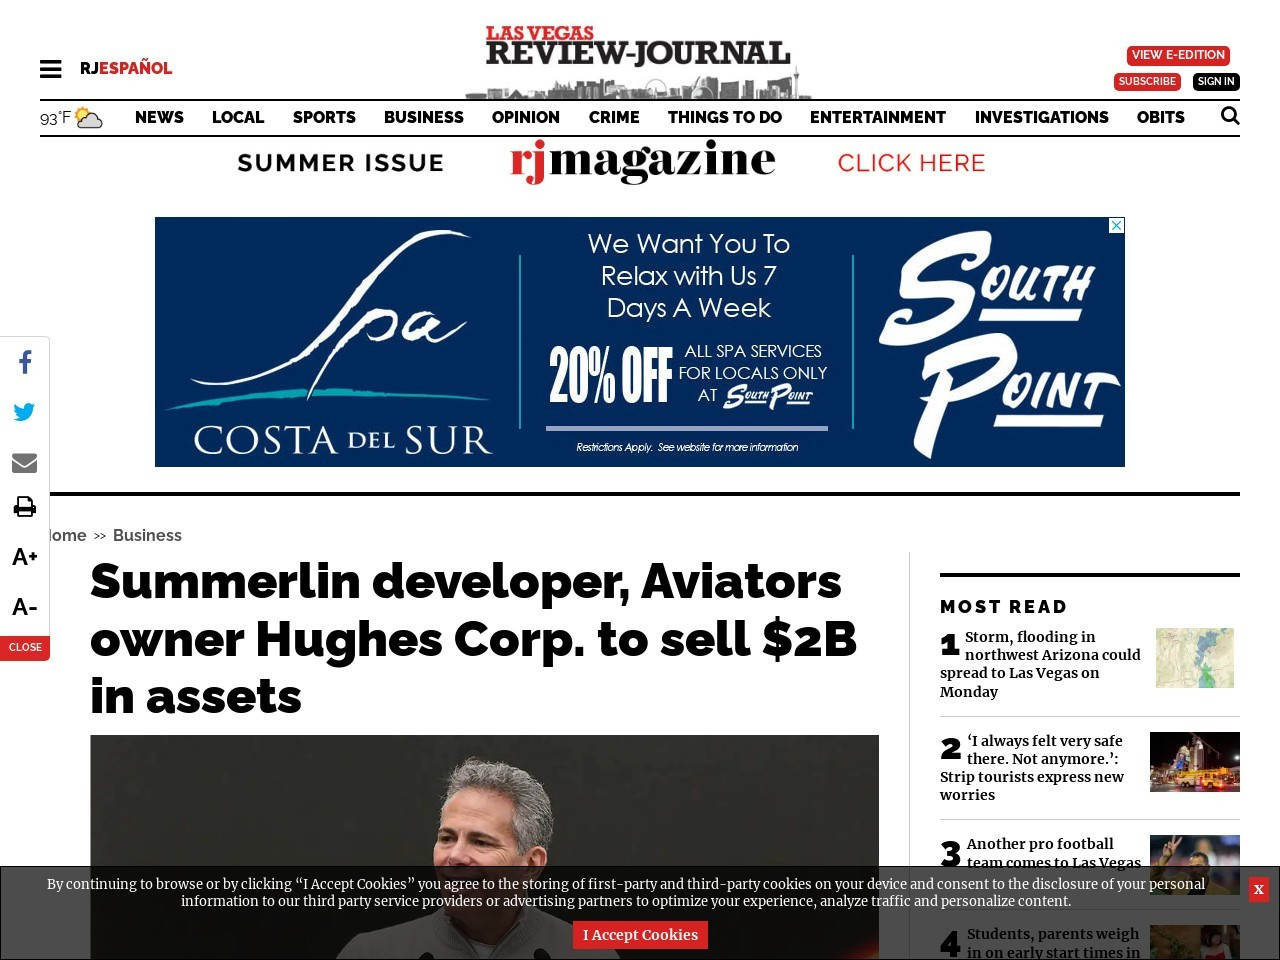 Summerlin developer Hughes replaces CEO; president to step down